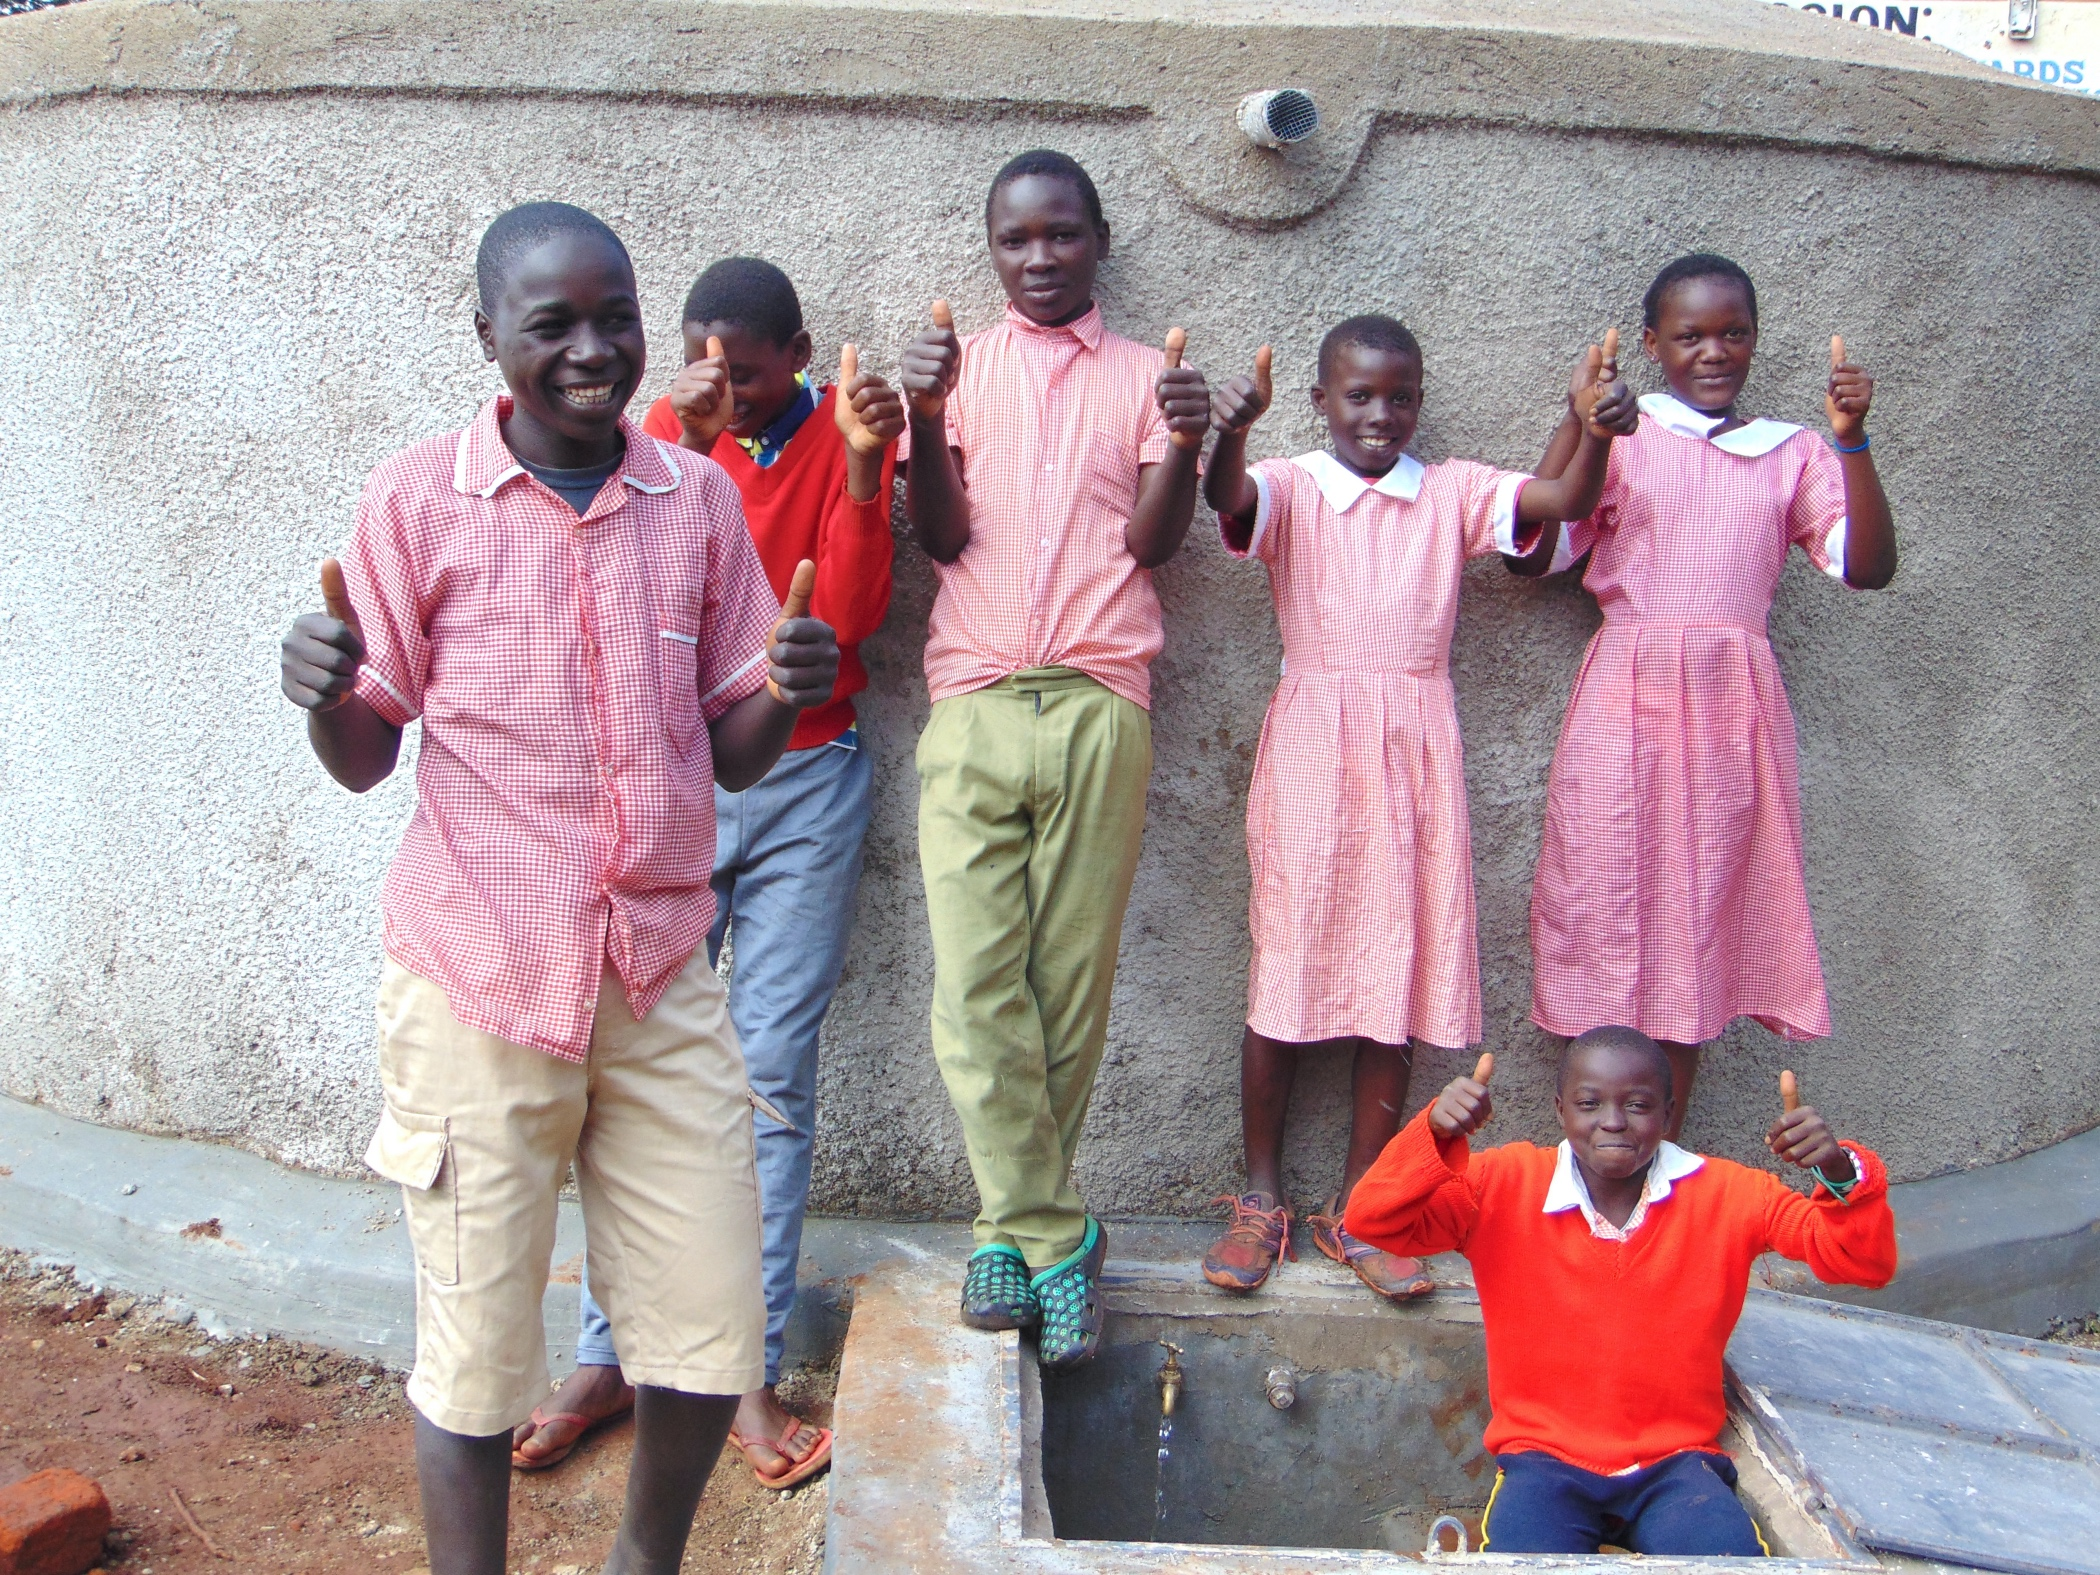 The Water Project : 29-kenya19083-thumbs-up-and-smiles-for-clean-water